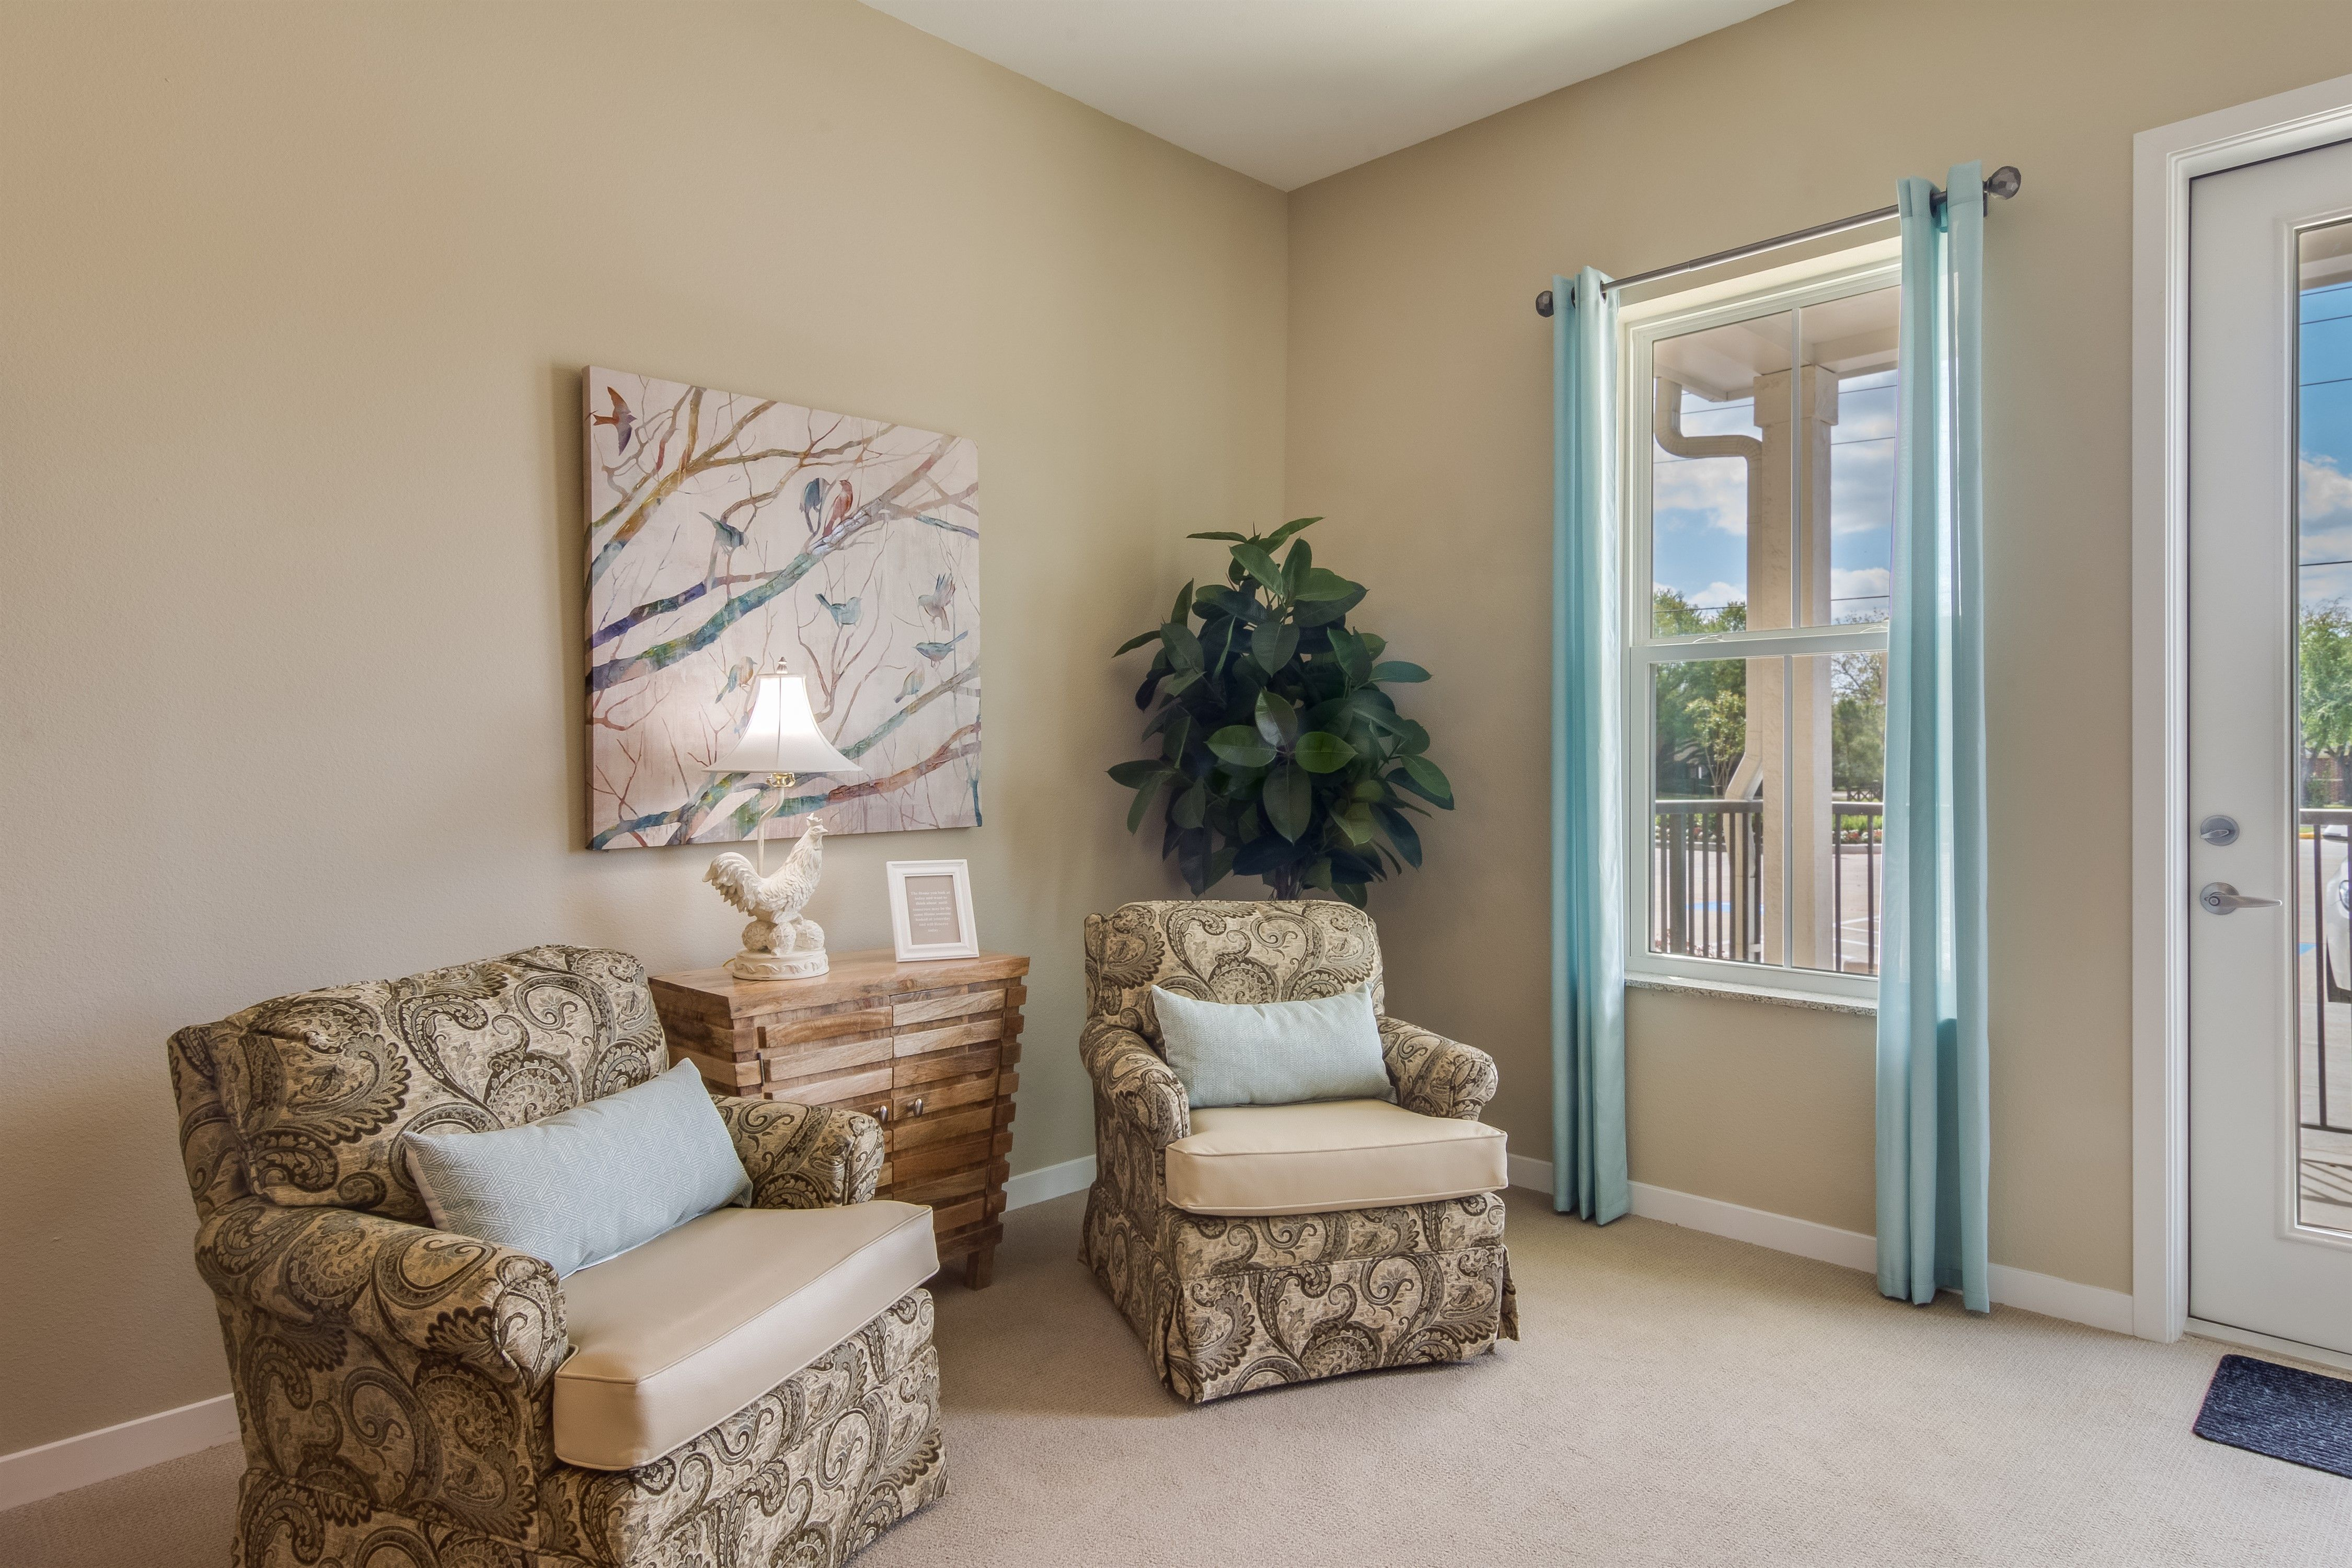 Styling Your New Senior Apartment Keep It Simple Like Park Creek Independent Living Cypress Texas Senior Living Communities Stylish Apartment Senior Living